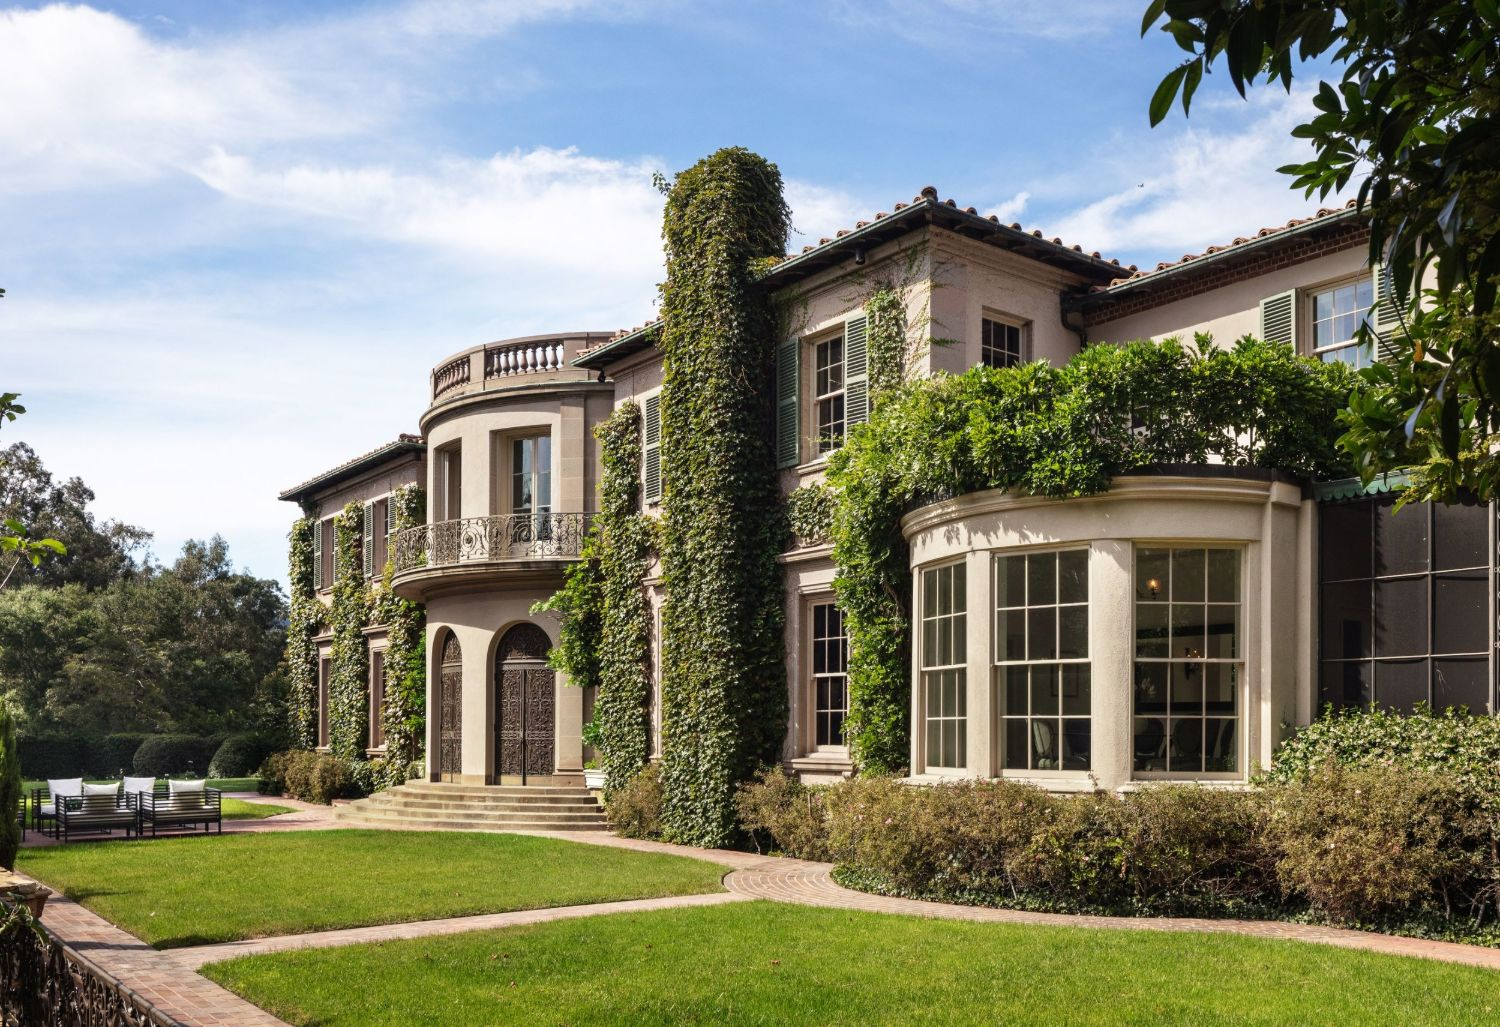 Owlwood Estate Was Once Home to Marilyn Monroe, Tony Curtis & Cher